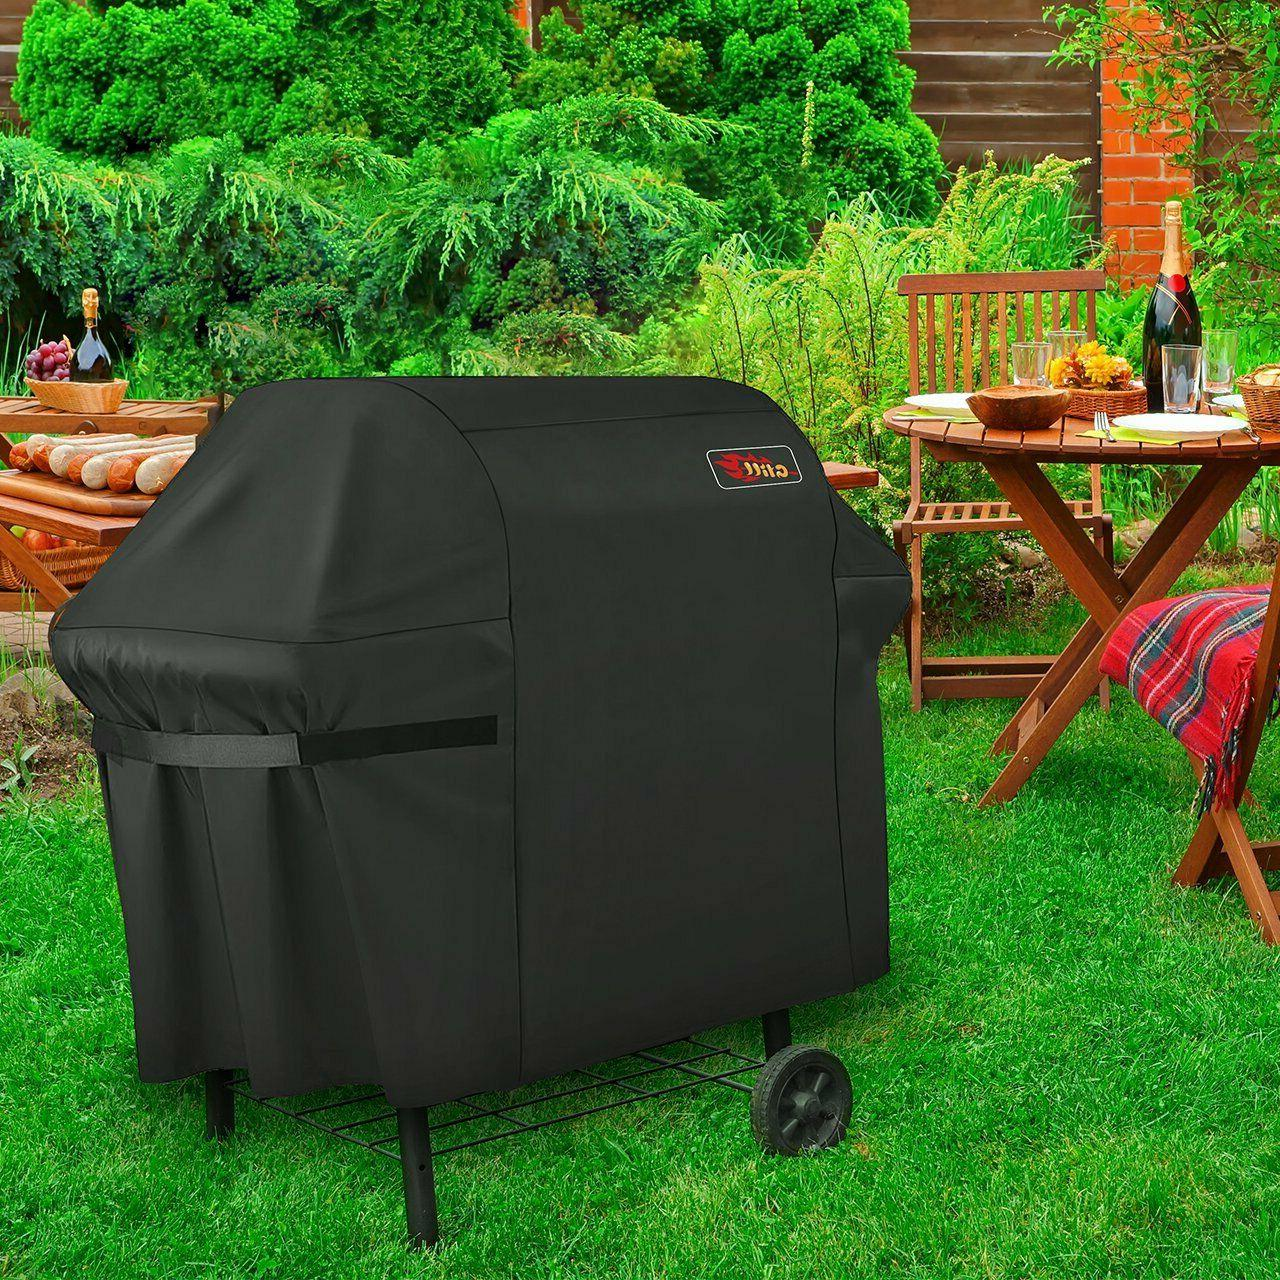 VicTsing Grill 60-Inch Waterproof BBQ Cover Duty